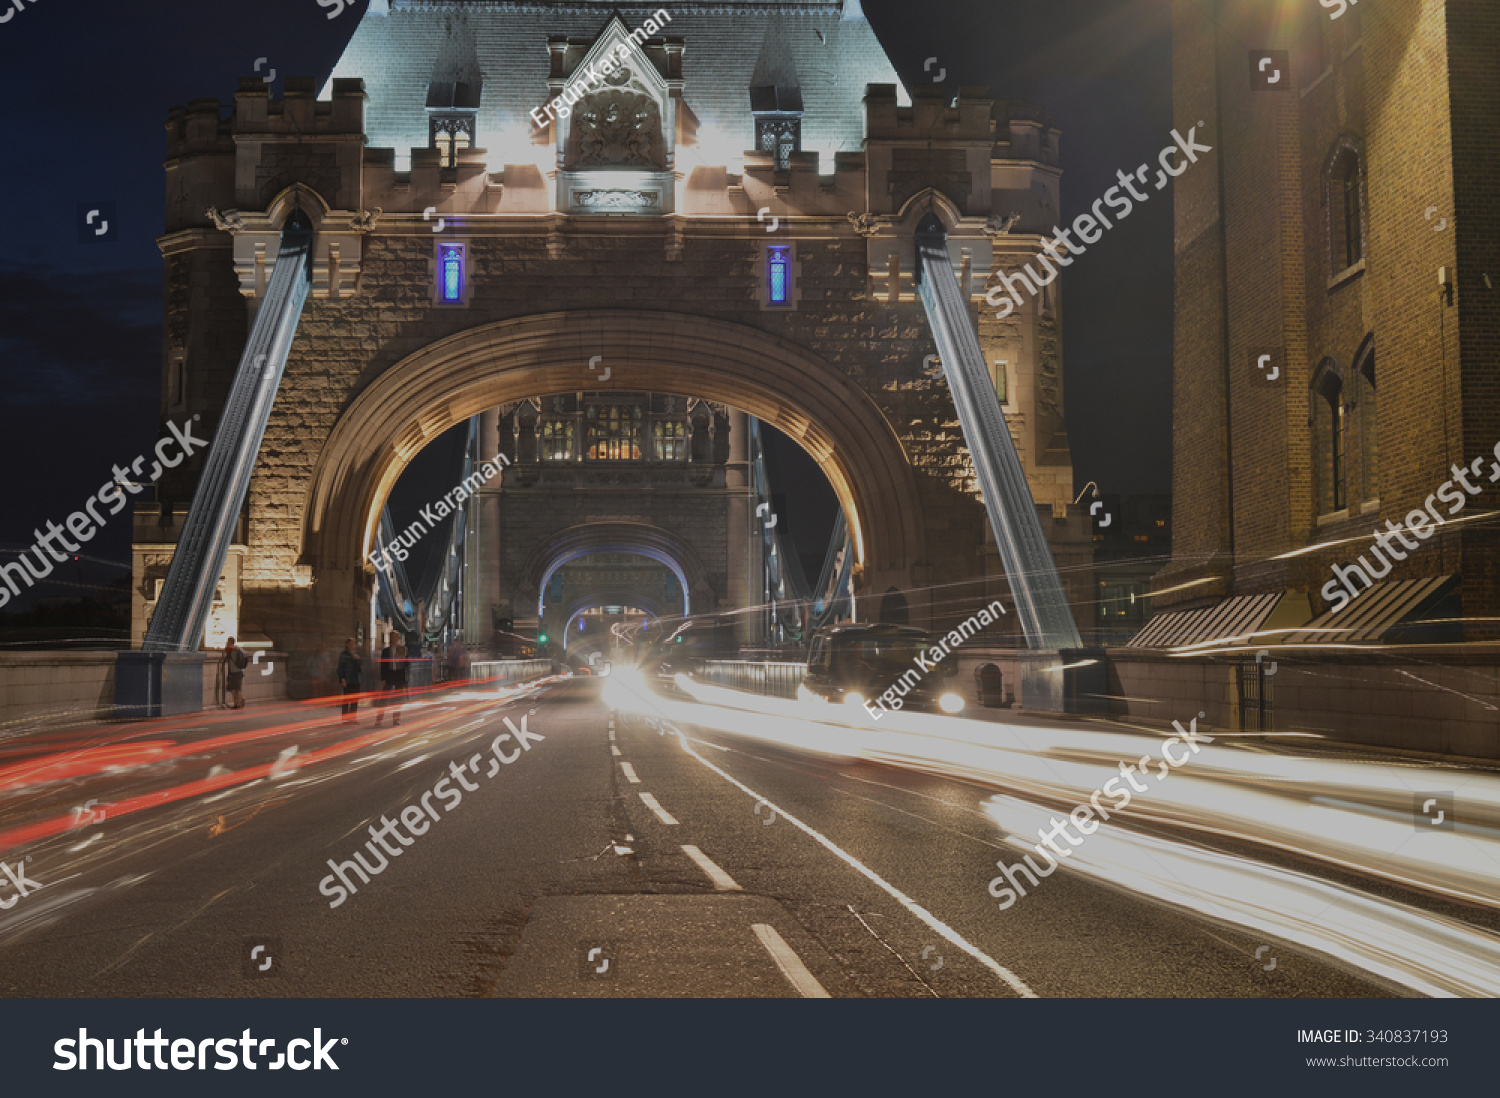 Center of Tower Bridge at night with traffic passing